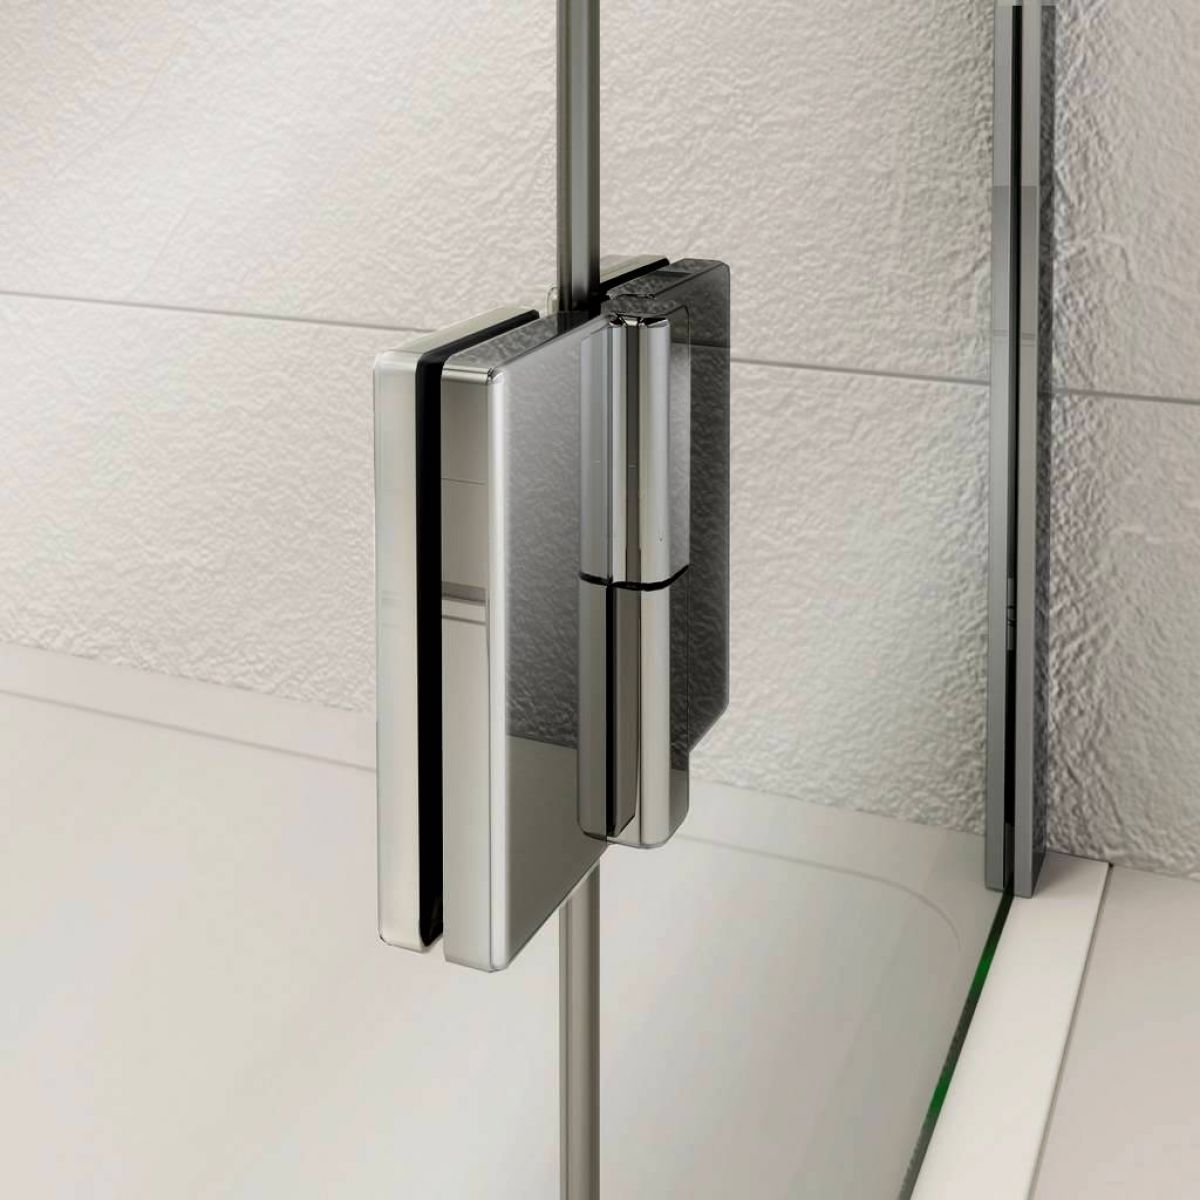 Kudos pinnacle 8 hinged shower door for recess uk bathrooms for 1200 hinged shower door